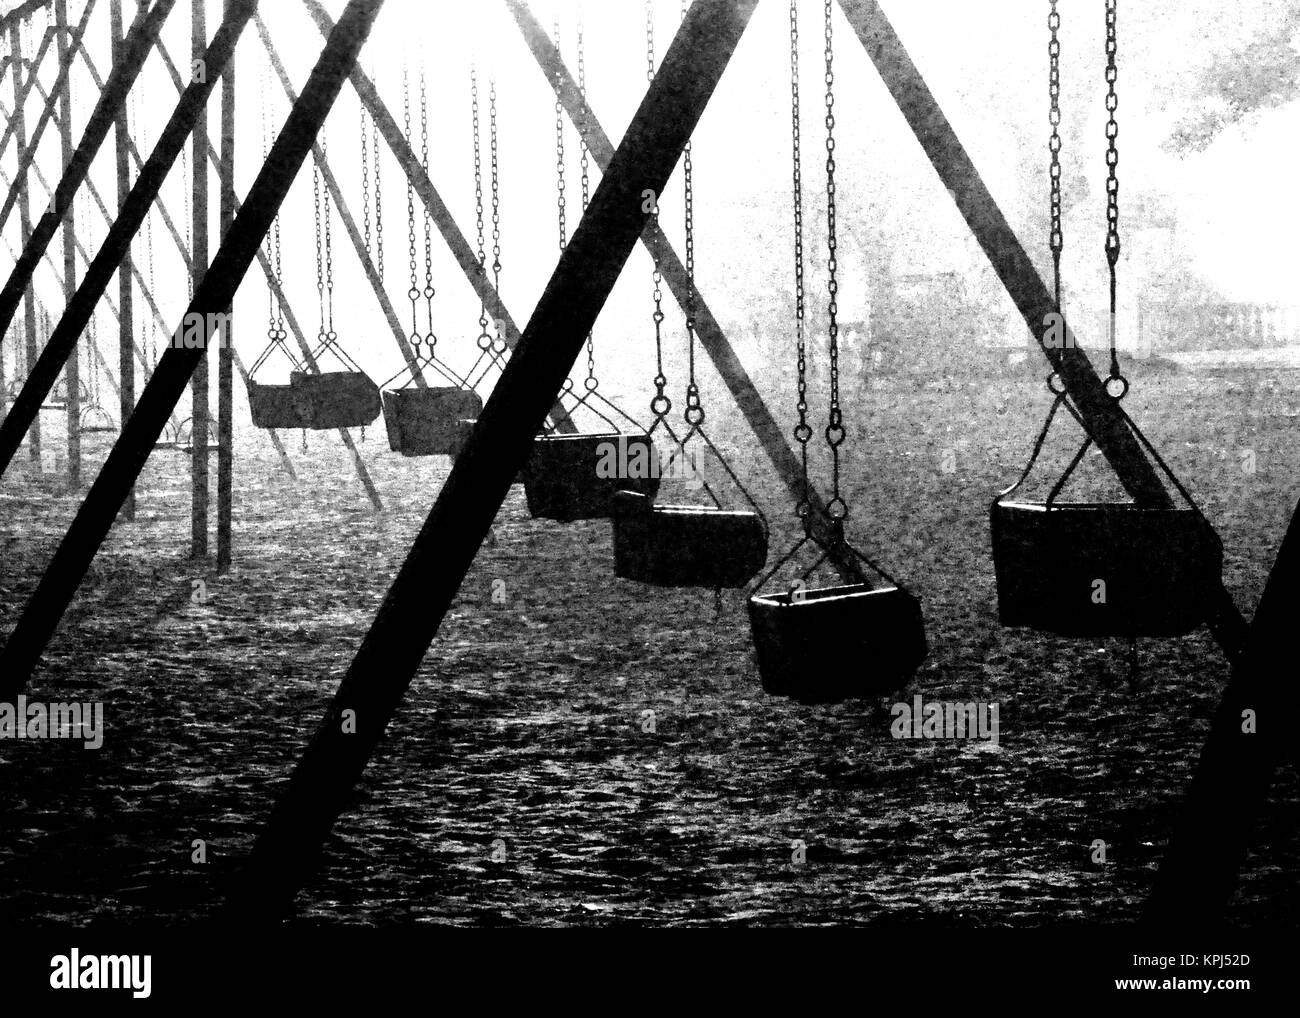 Silhouette seasaws in a Argentine park taken in a foggy day. Buenos Aires, Argentina - Stock Image